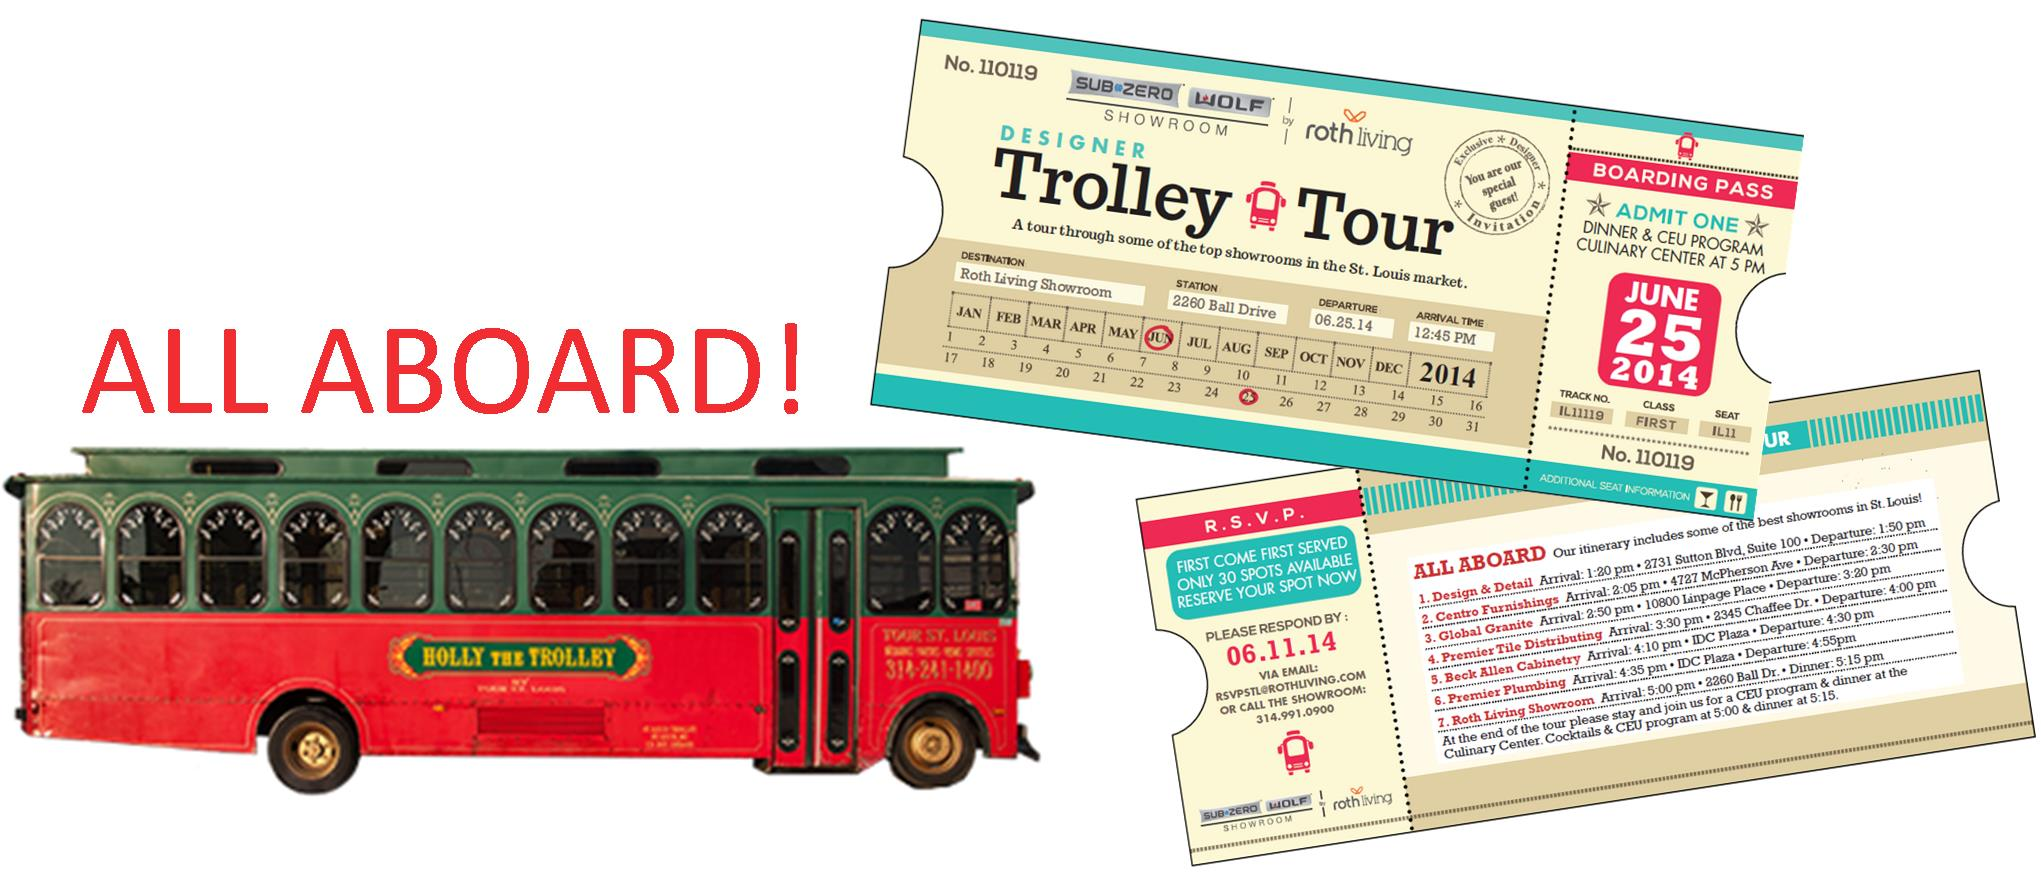 Designer Trolley Tour